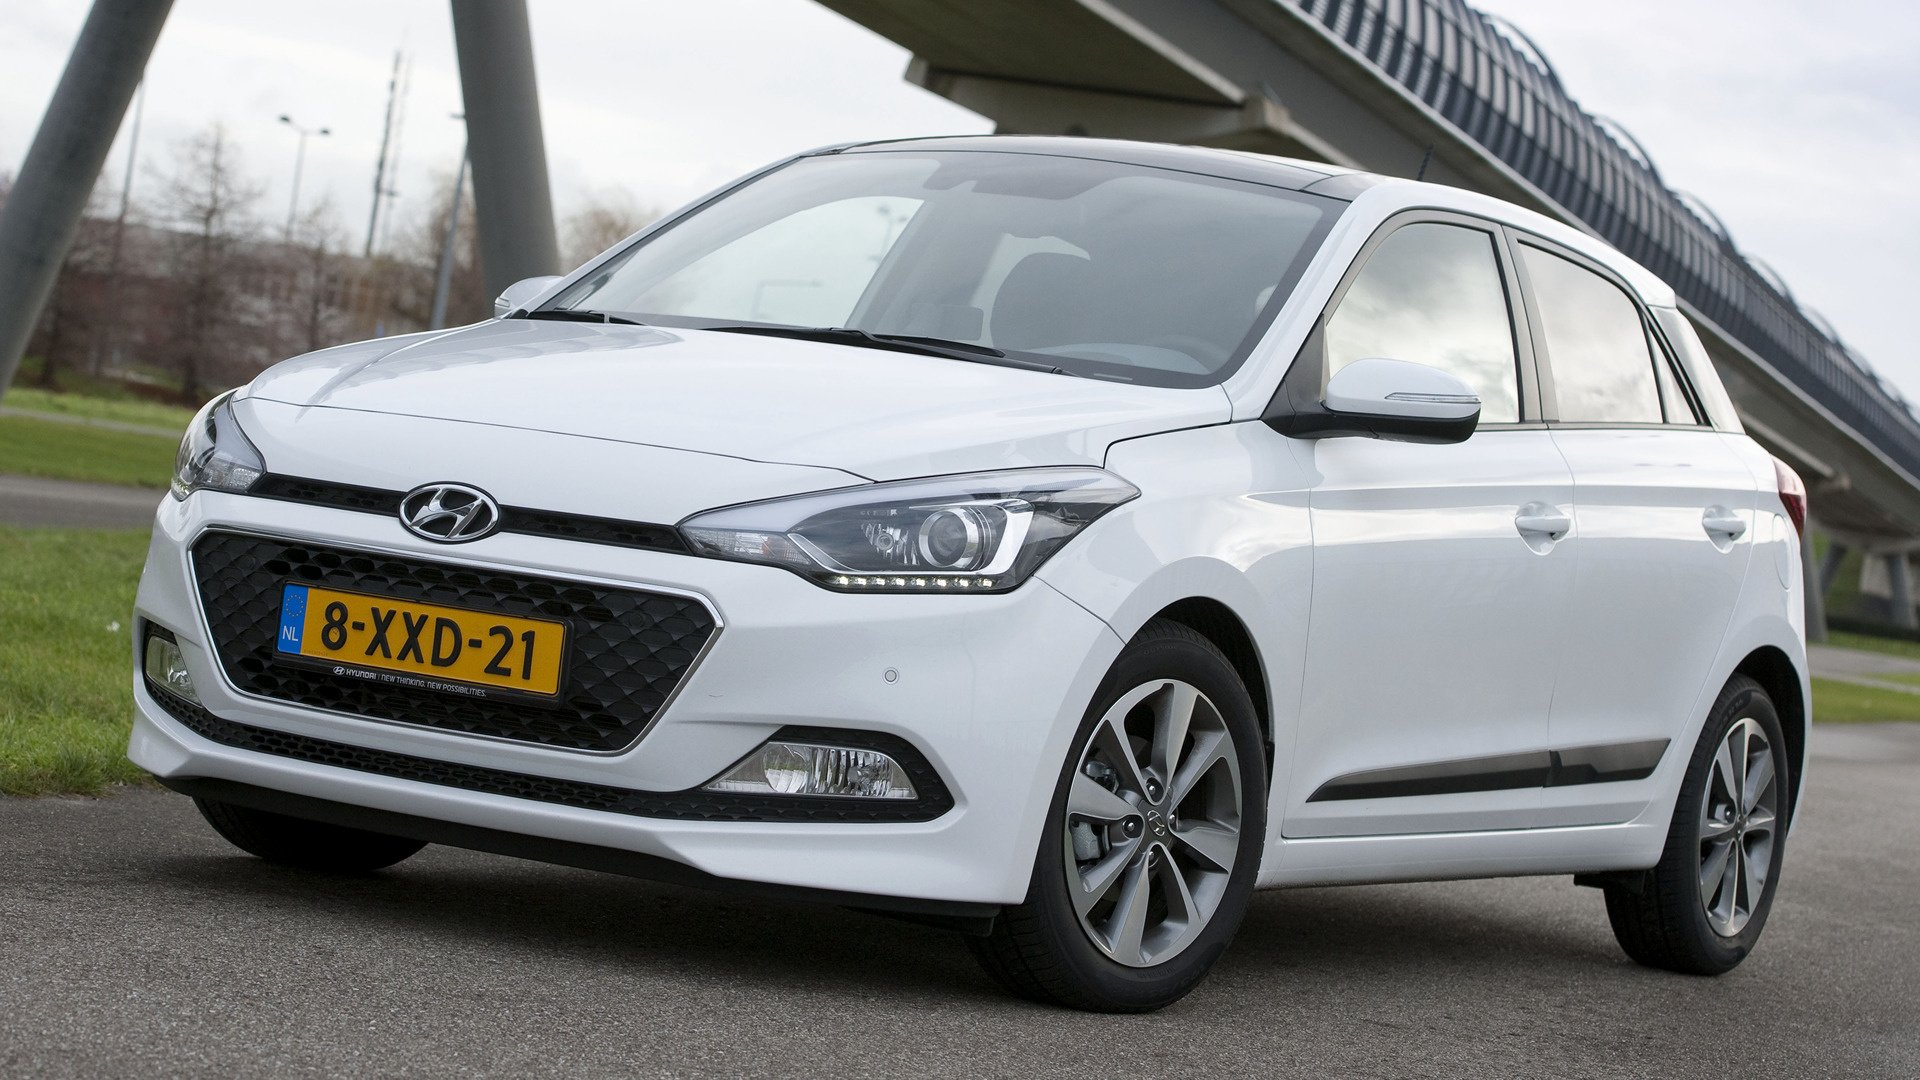 2014 Hyundai i20 Blue   Wallpapers and HD Images Car Pixel 1920x1080